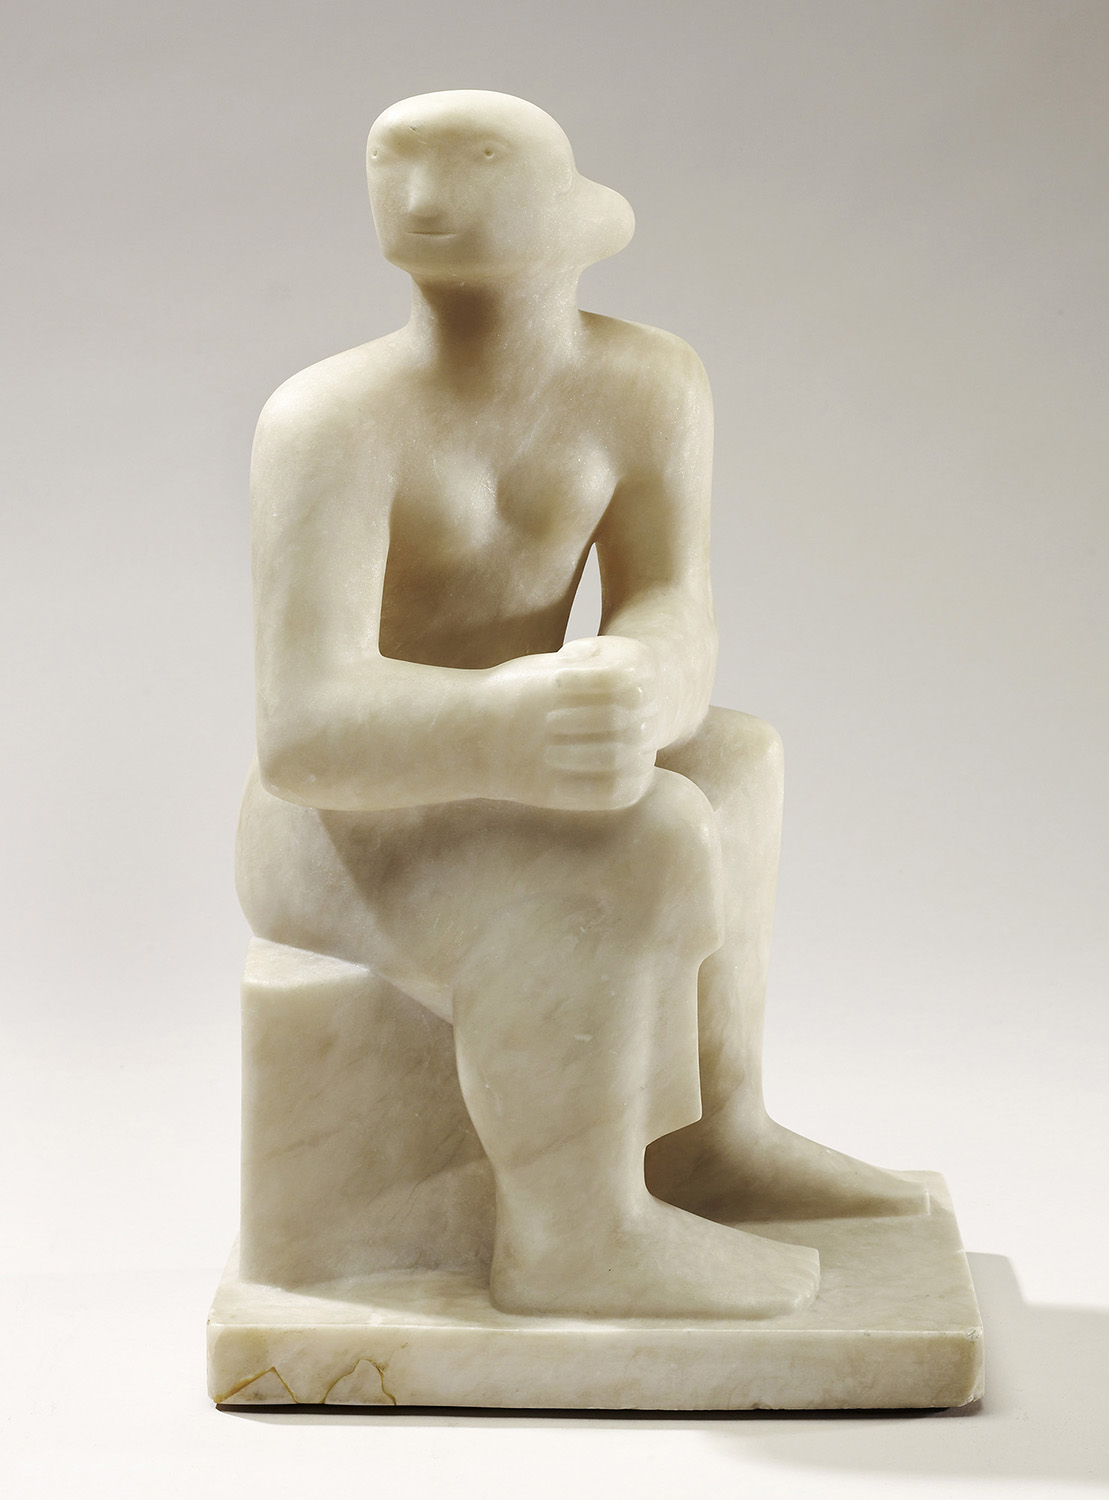 Henry Moore Seated Figure 1930 (LH 92)